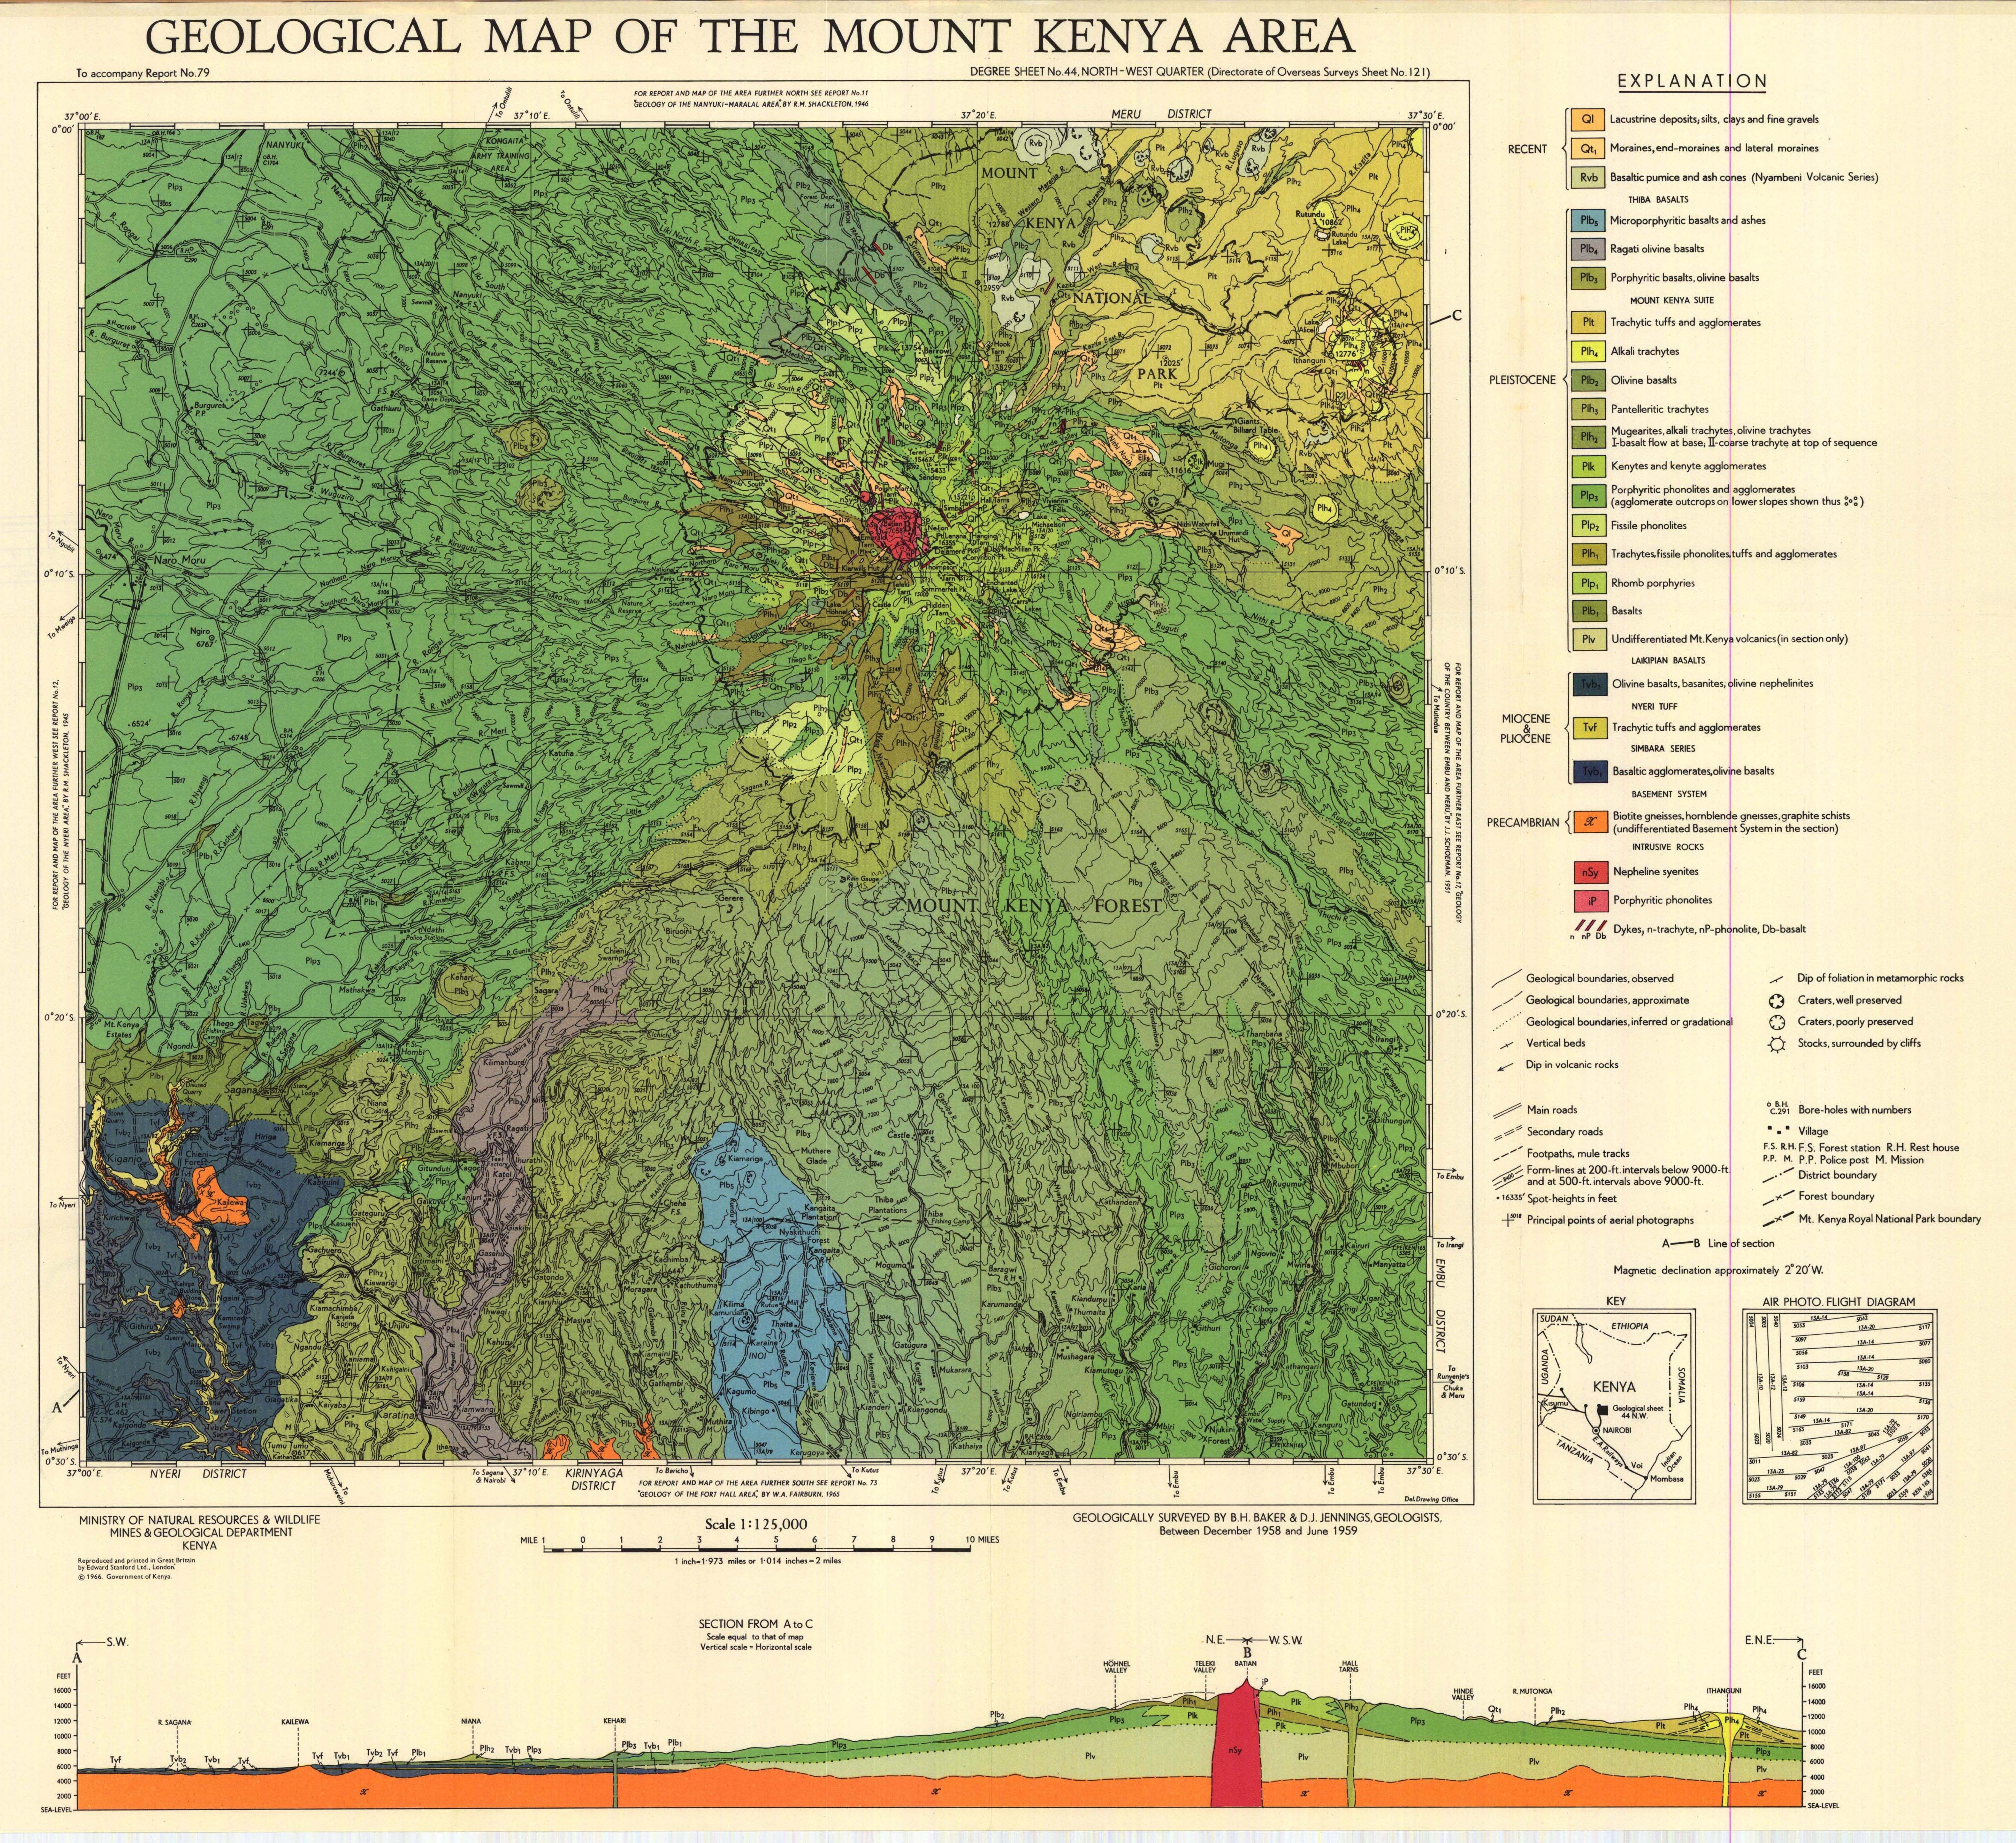 Geological map of the mount kenya area degree sheet no 44 geological map of the mount kenya area degree sheet no 44 north west quarter directorate of overseas surveys sheet no 121 gumiabroncs Images